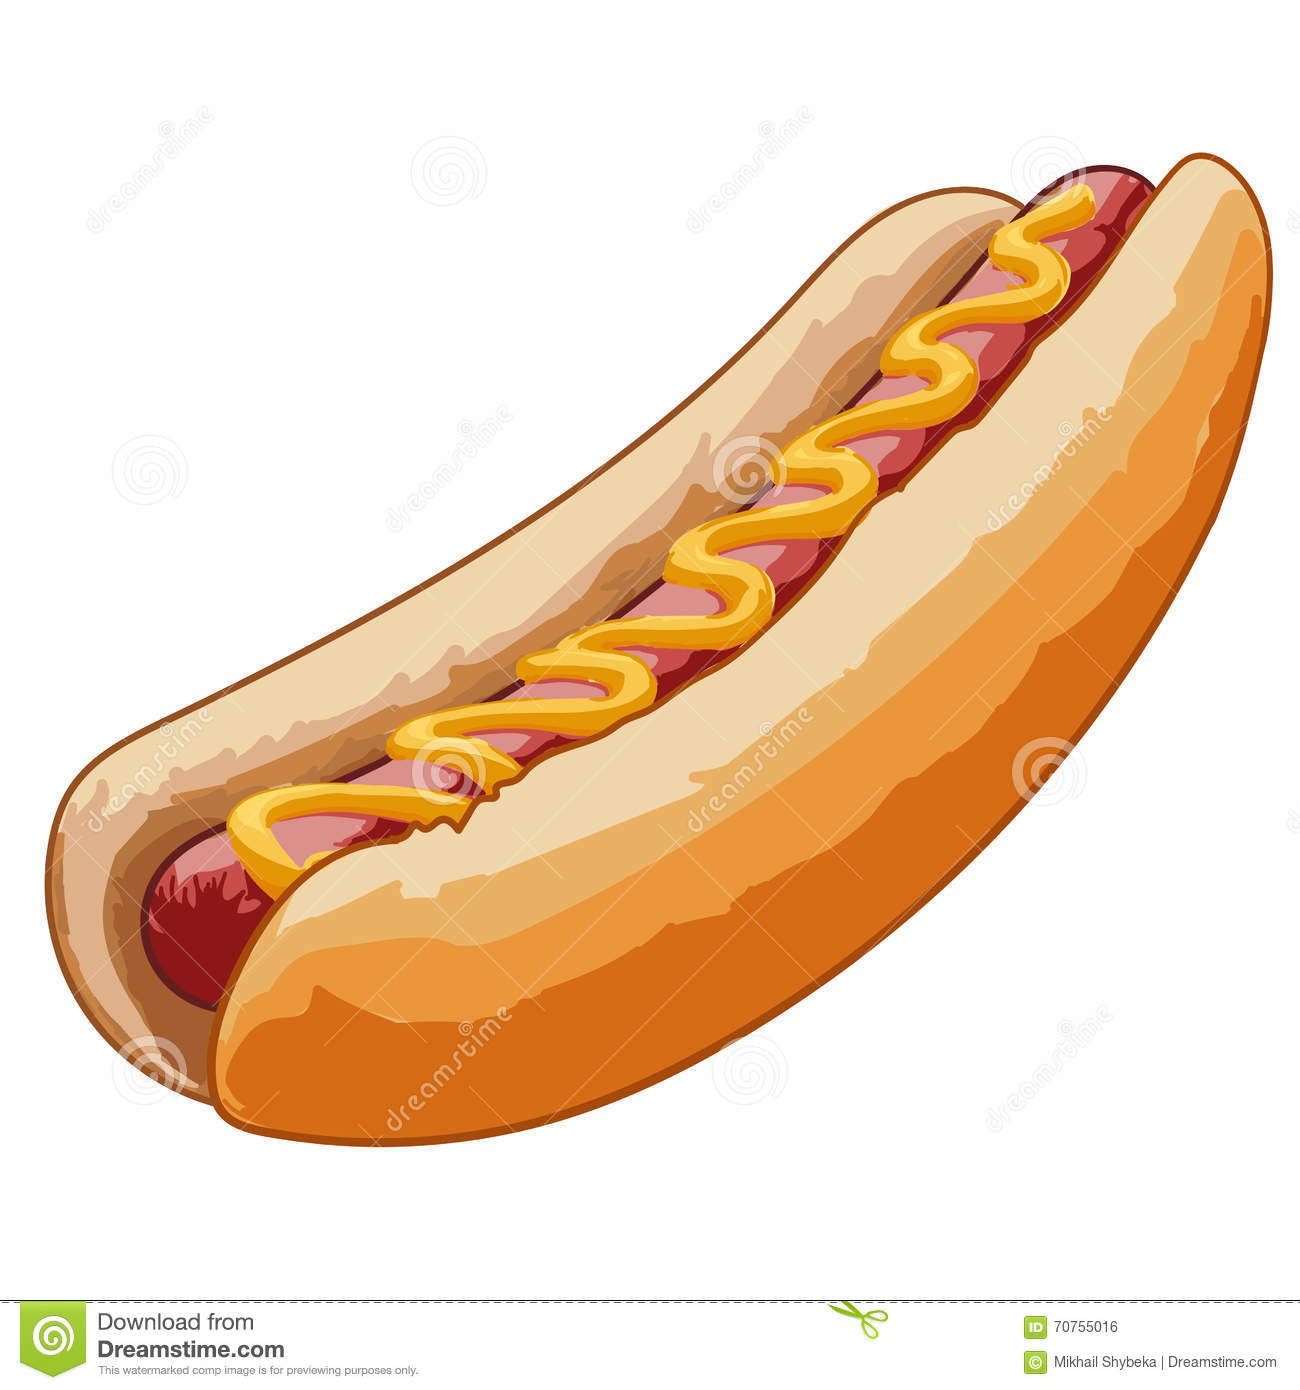 sausage cartoons illustrations vector stock images 27561 pictures to download from. Black Bedroom Furniture Sets. Home Design Ideas